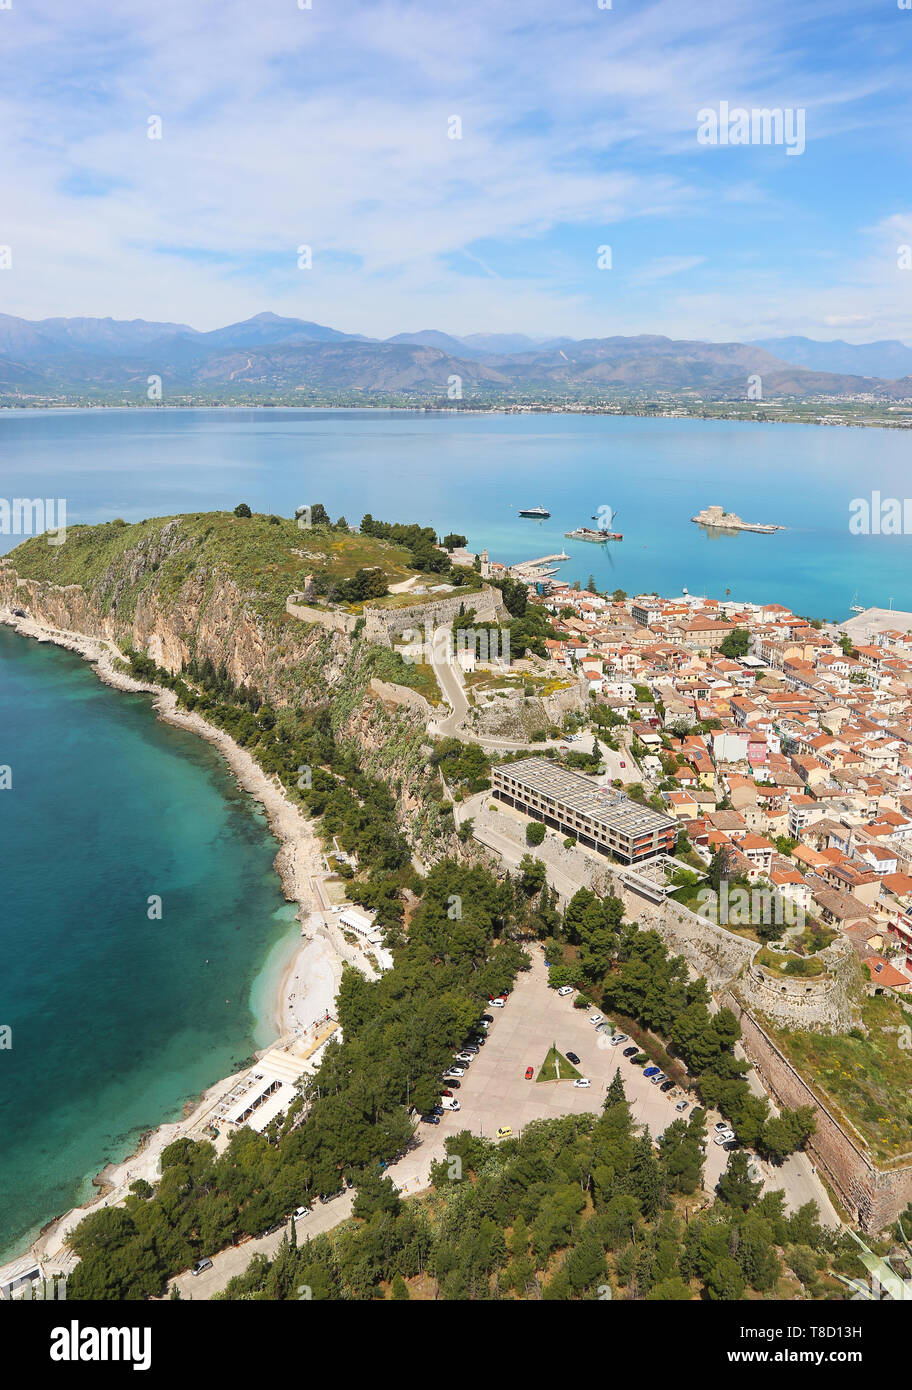 landscape from above of Nafplio Argolis Greece - drone view - Stock Image